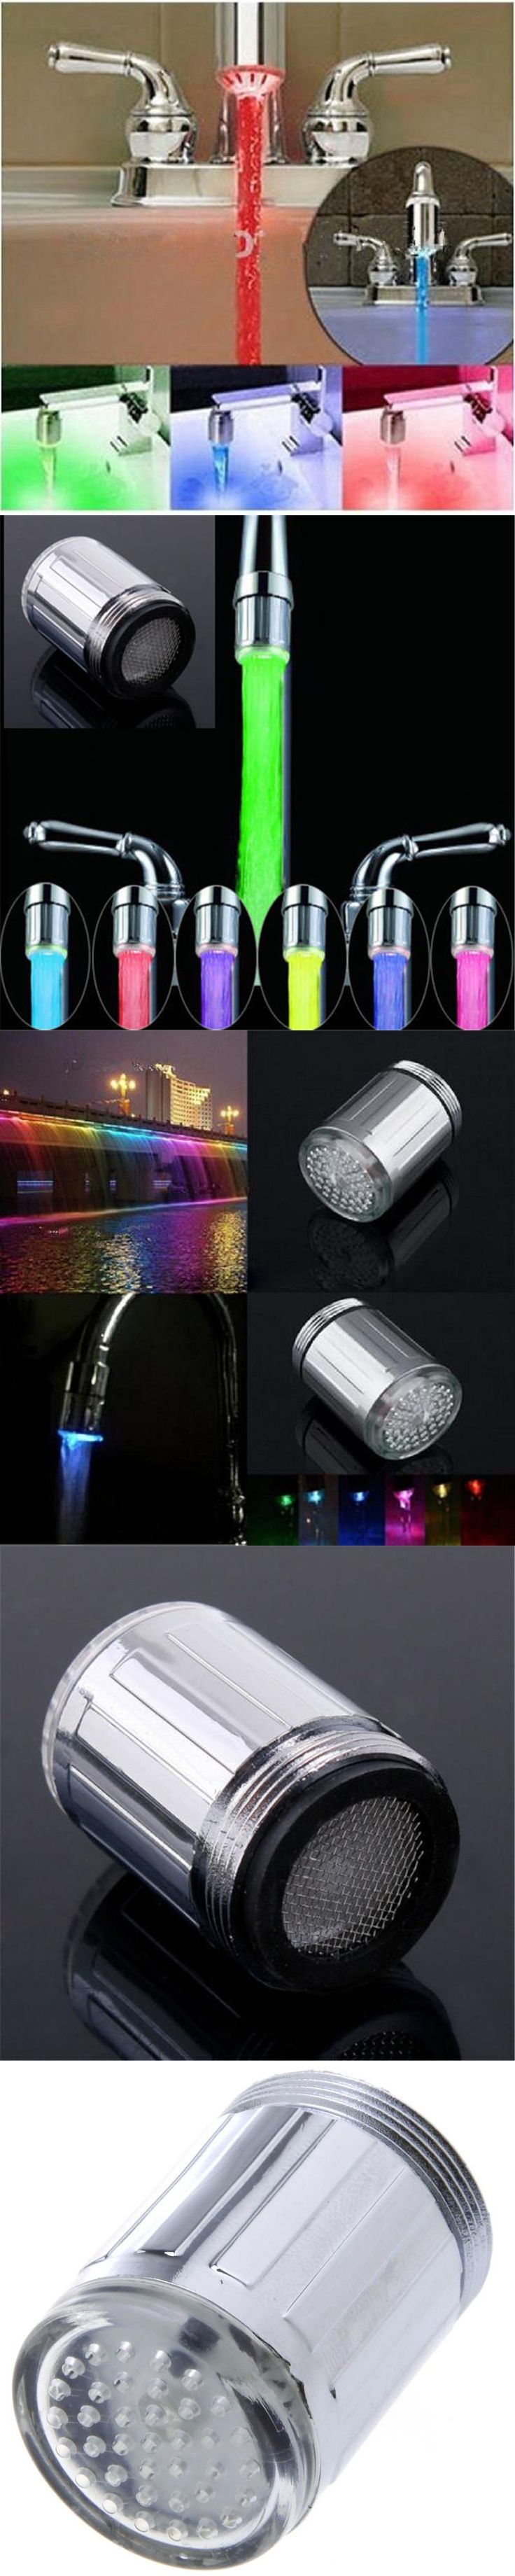 LED Water Faucet Stream Light 7 Colors Changing Glow Shower Tap Head Kitchen Temperature Sensor Tap TE Kitchen Accessories